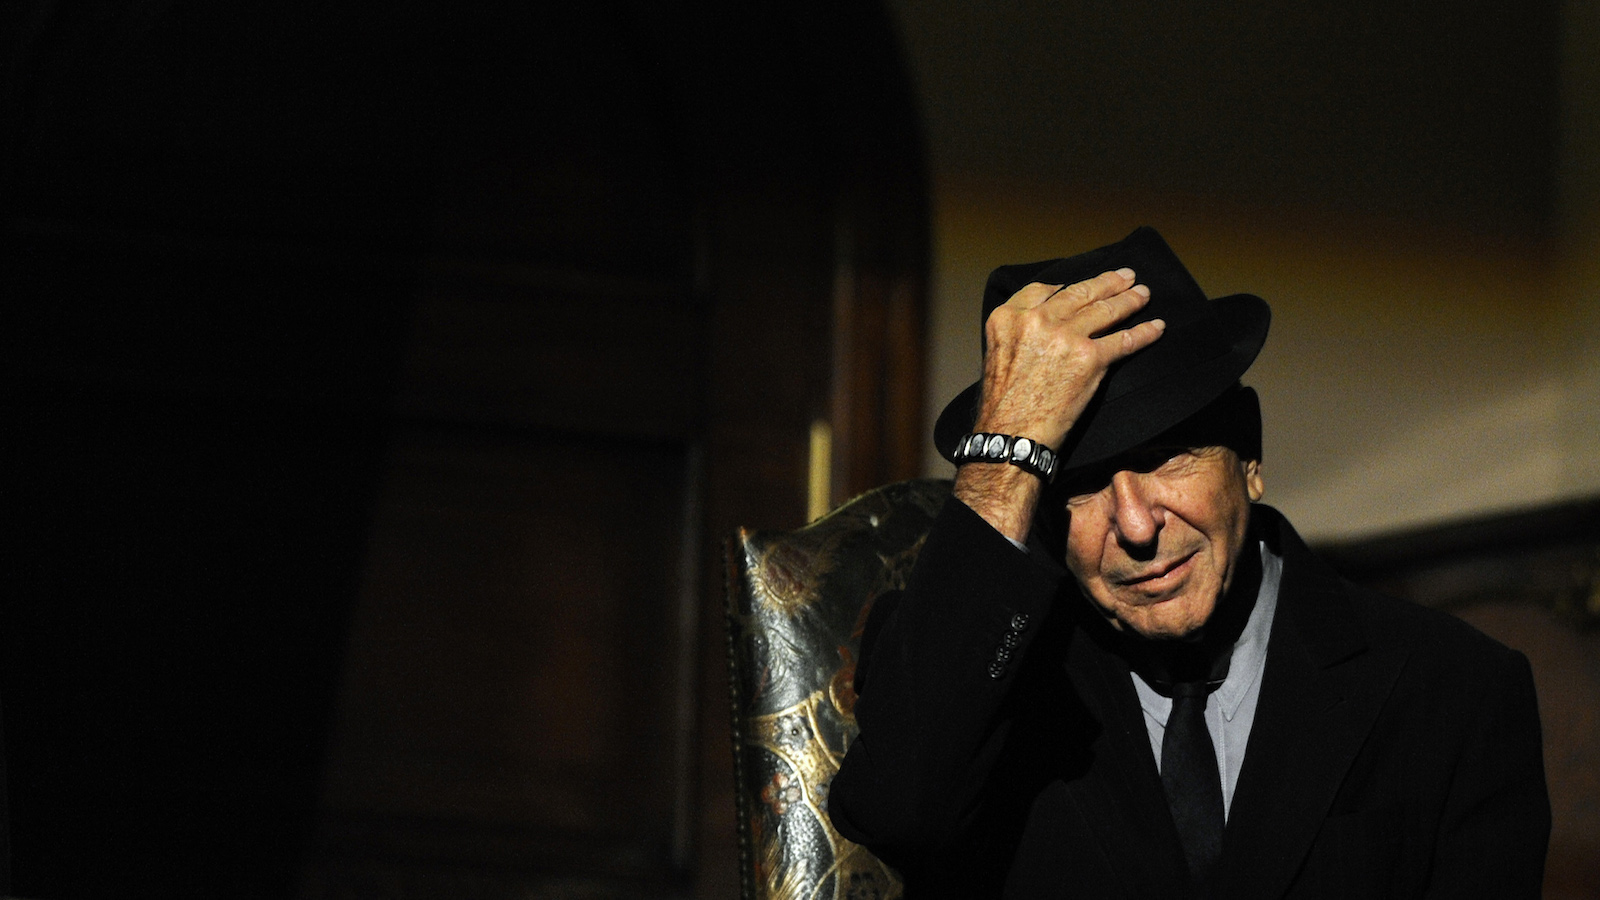 Leonard cohen 39 s death a playlist of songs and lyrics from for Leonard cohen music videos